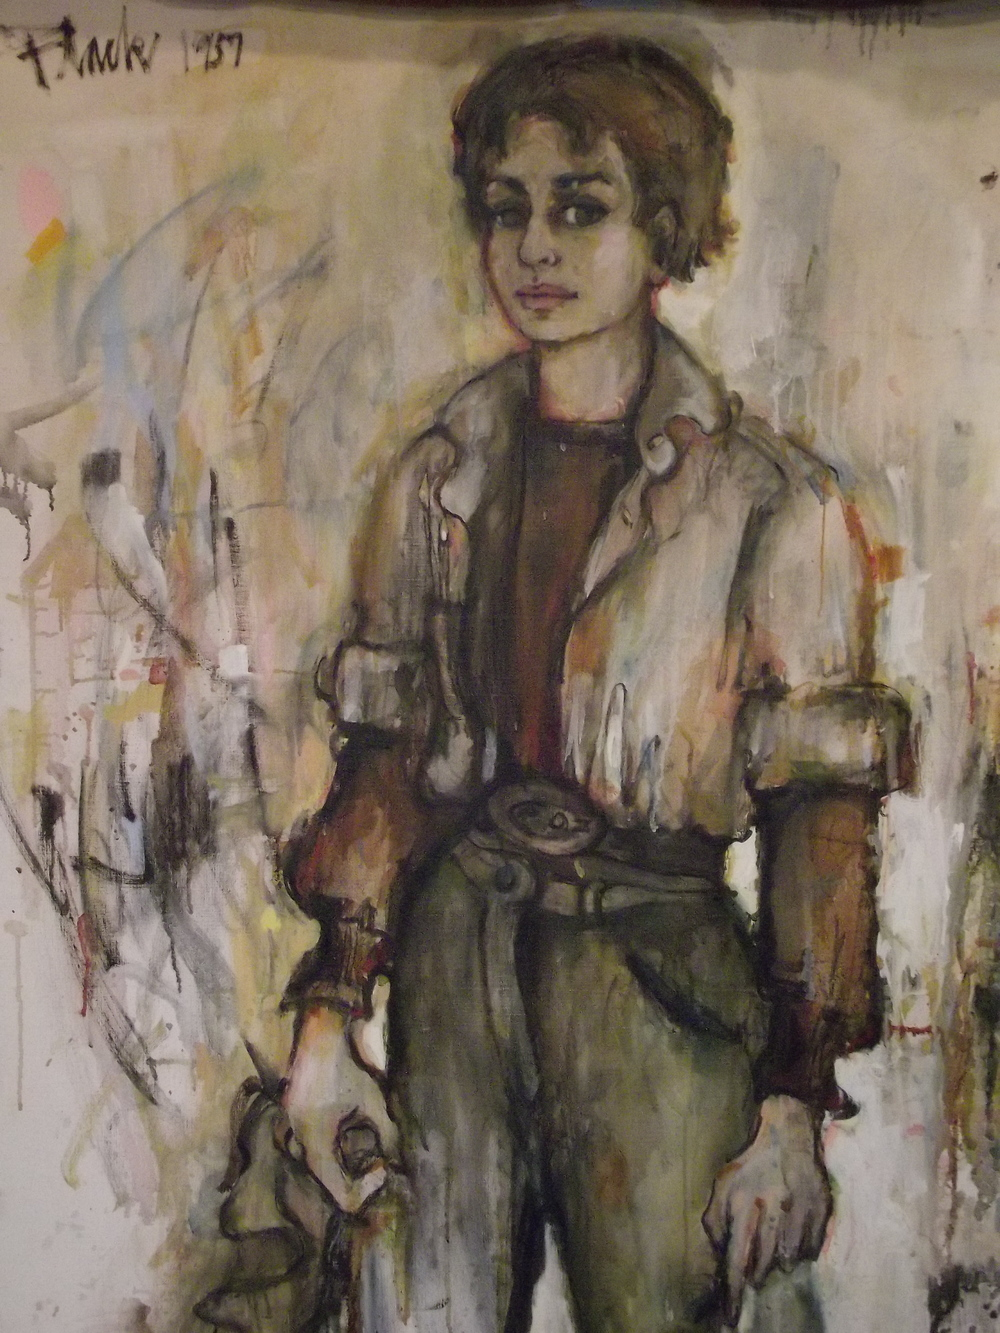 Self Portrait 1957